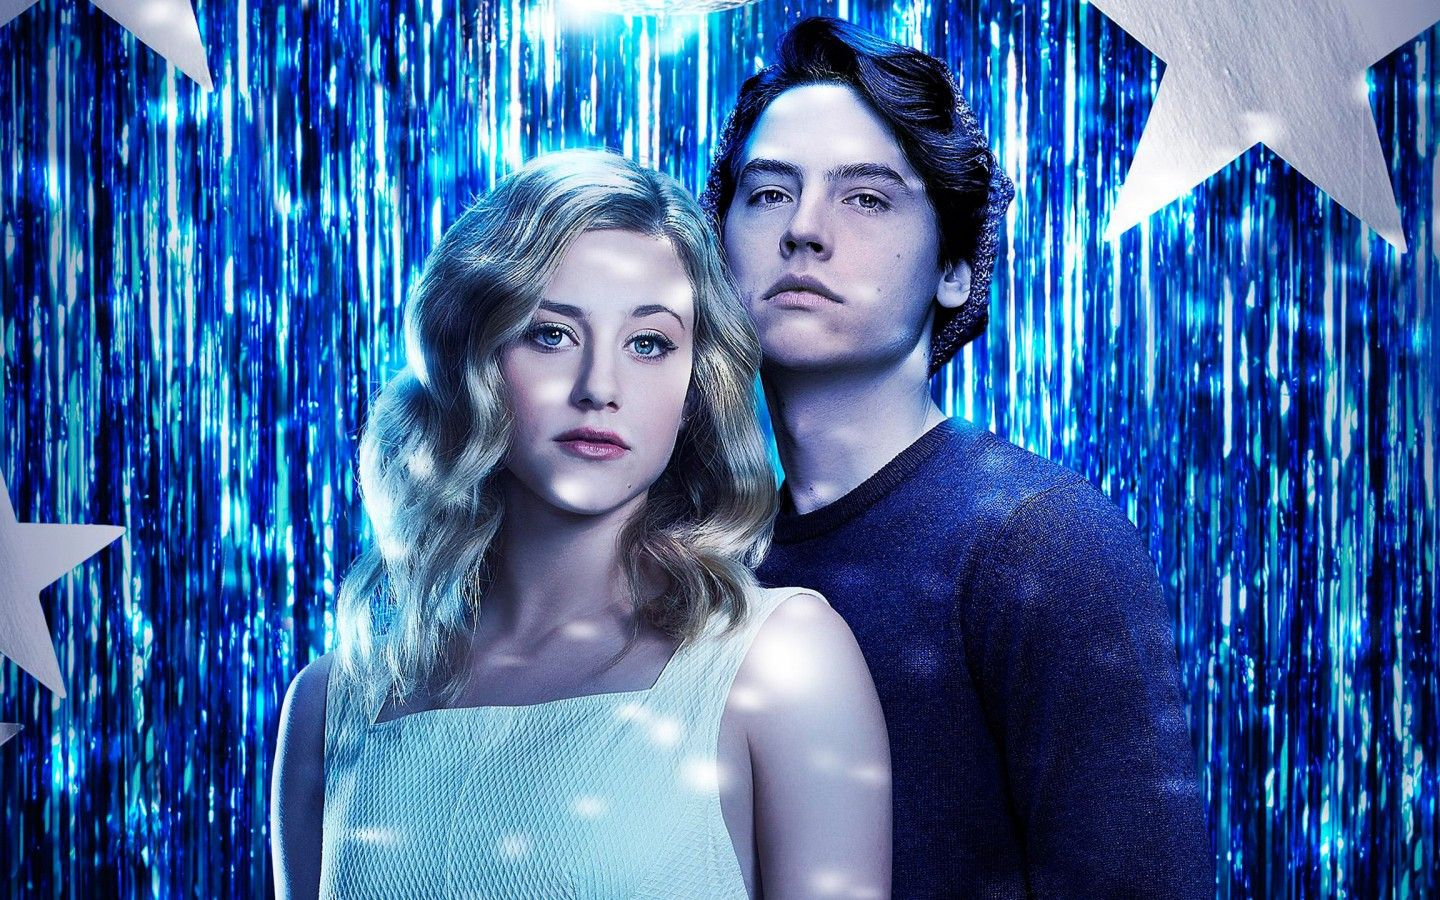 Cute Riverdale Wallpapers Desktop Background Betty And Jughead Cole Sprouse Lili Reinhart